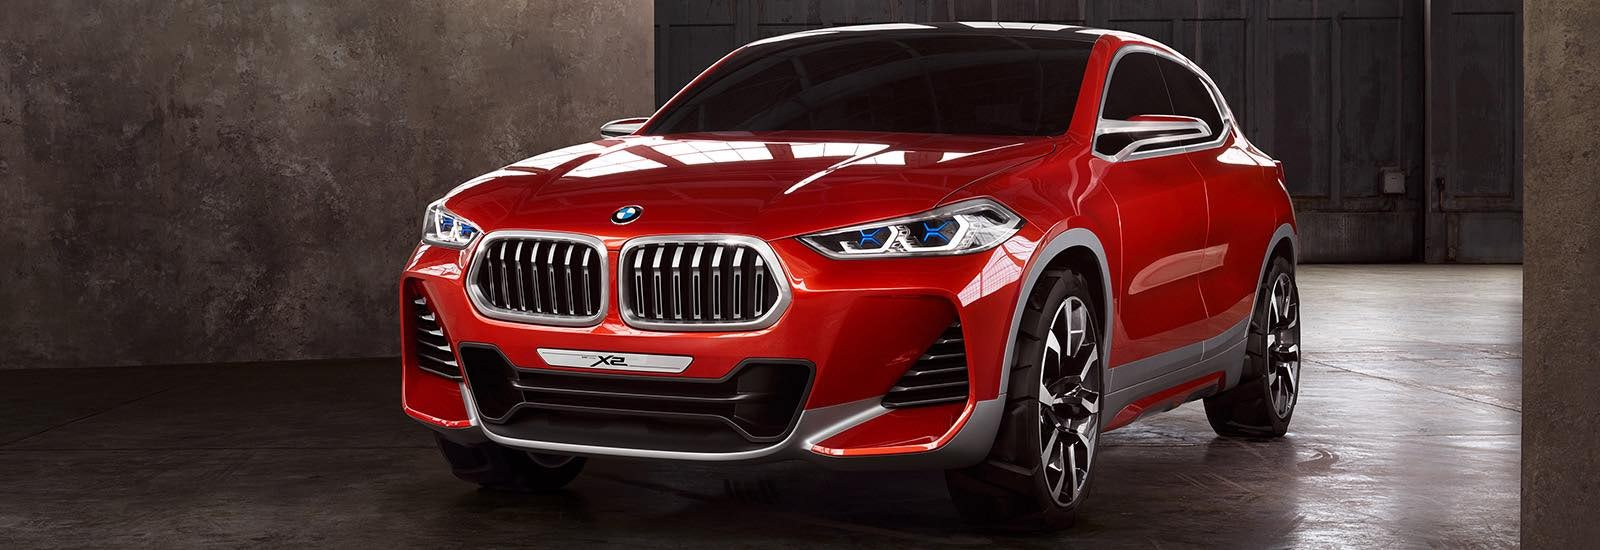 new car reg release date2018 BMW X2 SUV price specs and release date  carwow